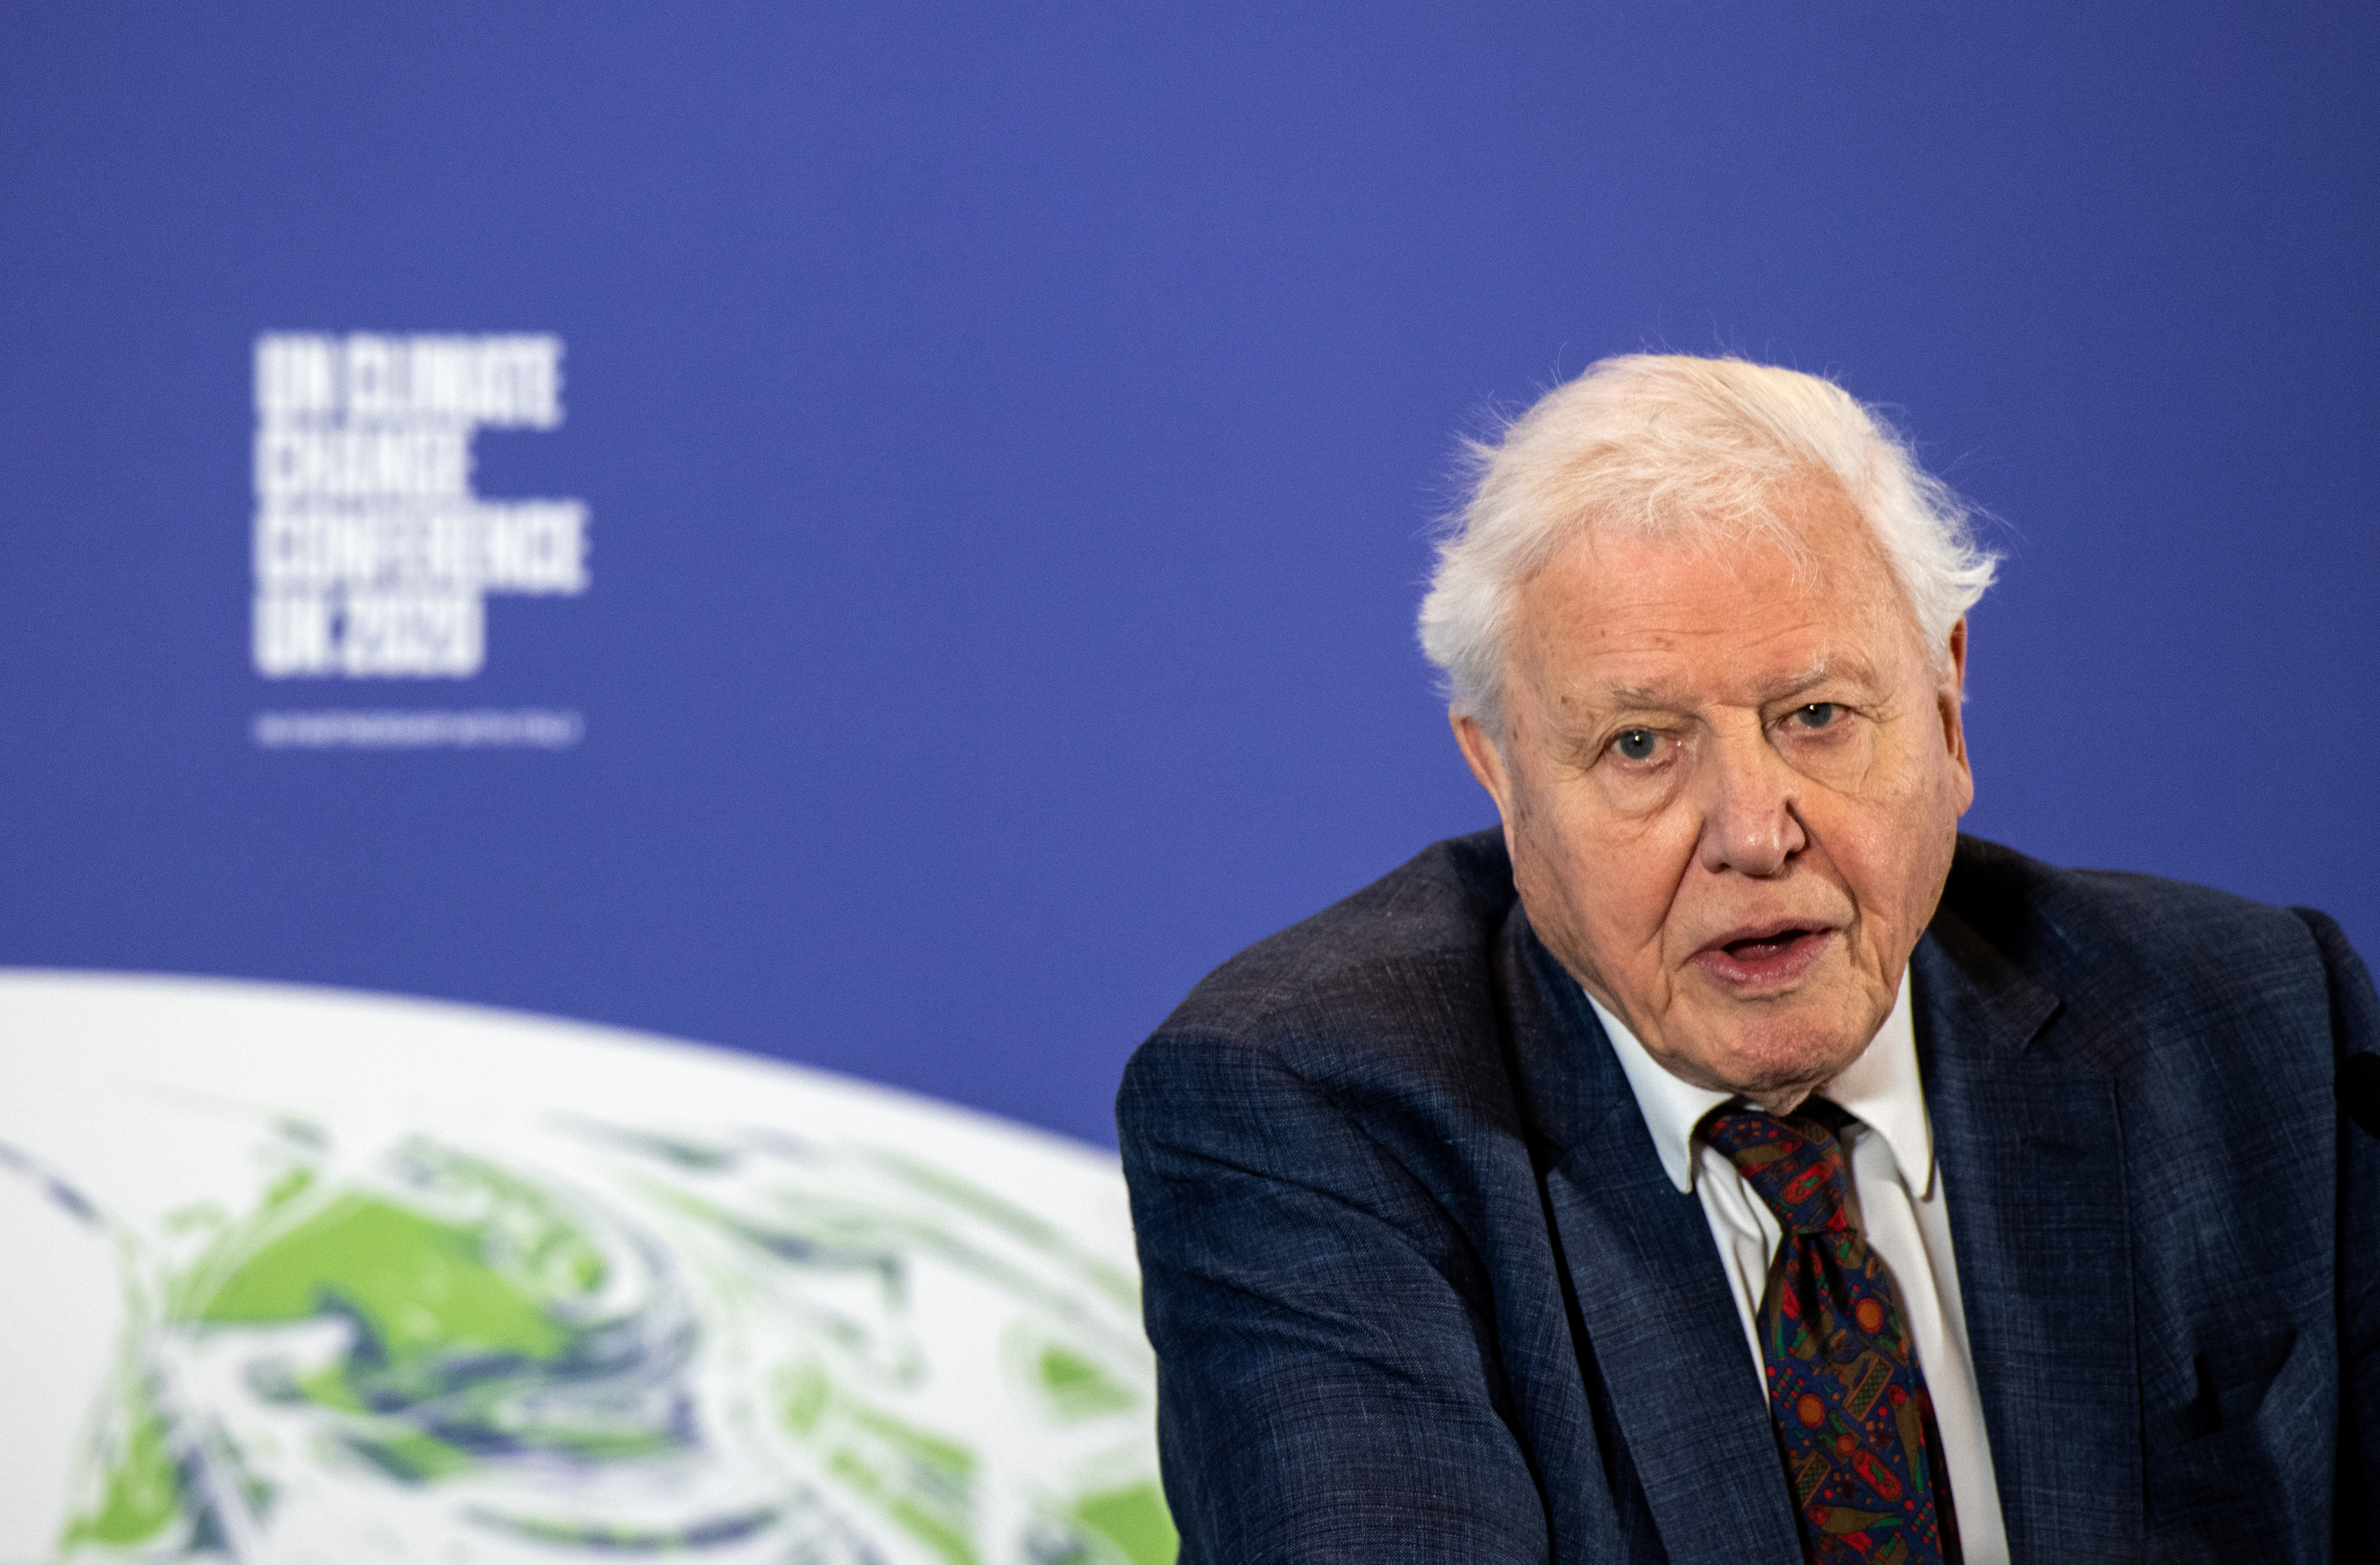 David Attenborough speaks during a conference about the UK-hosted COP26 UN Climate Summit, at the Science Museum in London, Britain February 4, 2020. Chris J Ratcliffe/Pool via REUTERS - RC2OTE9EIT0D